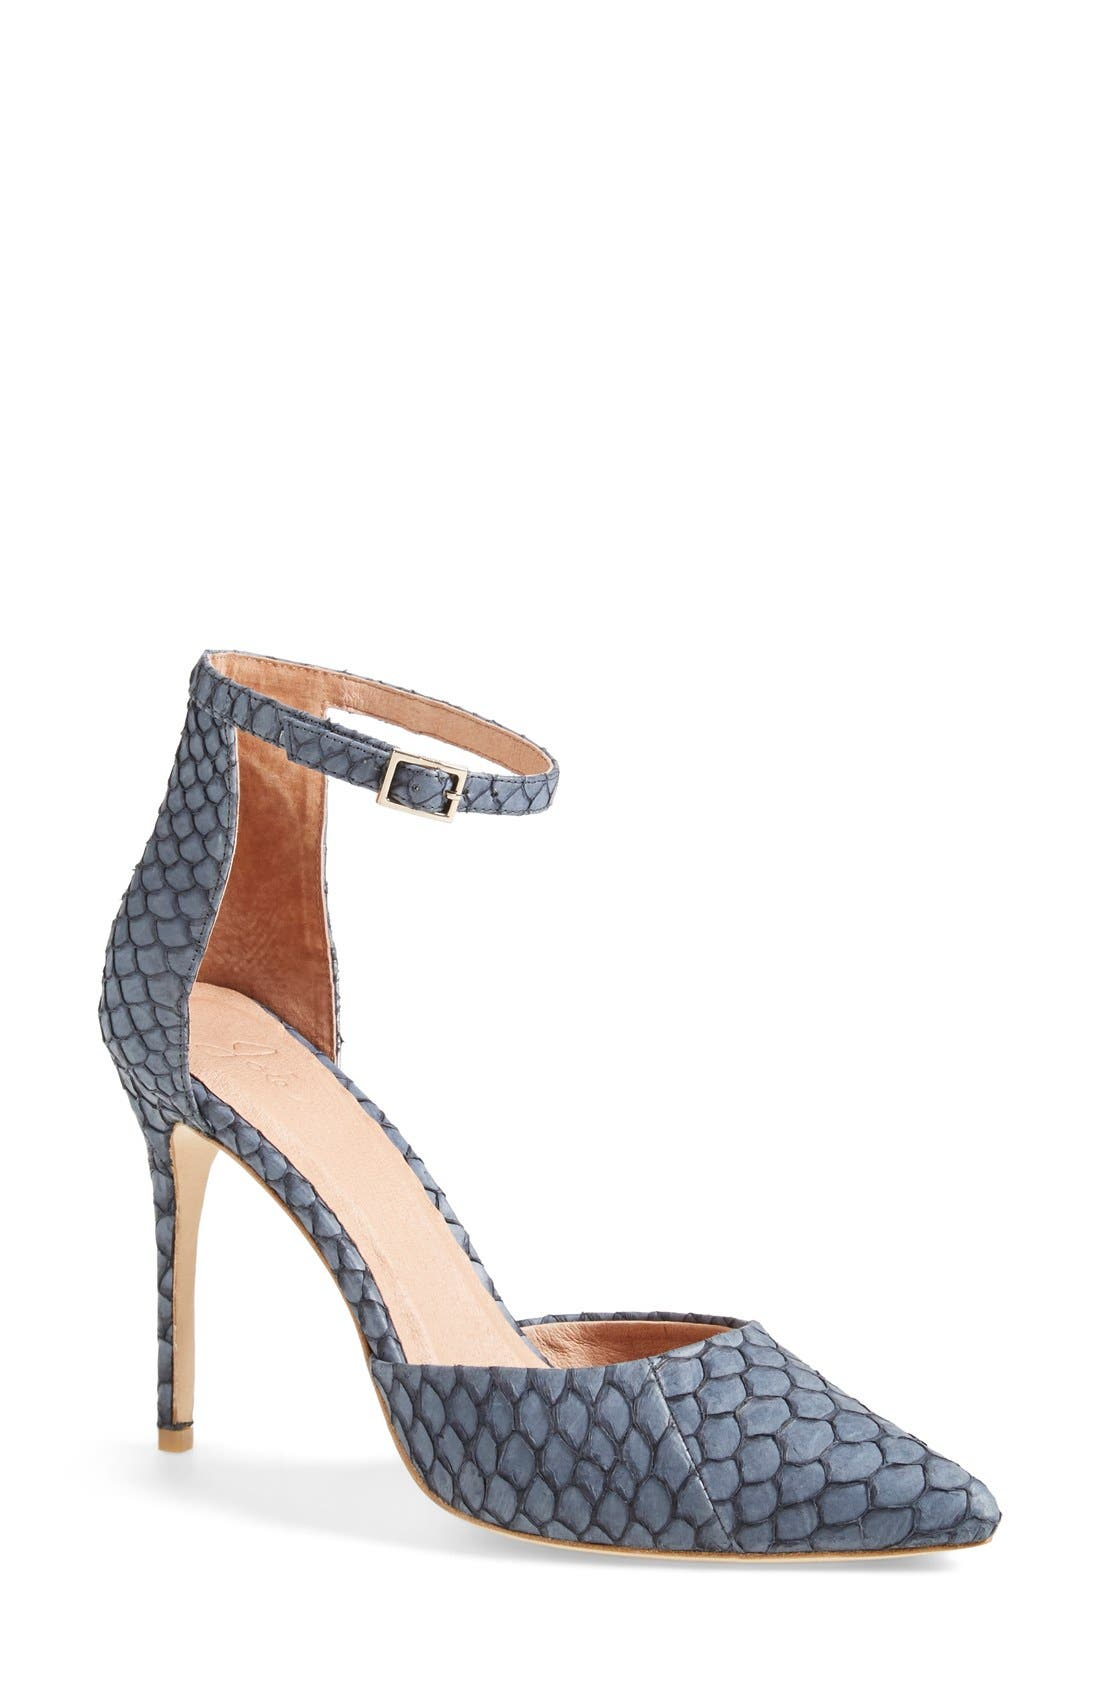 Alternate Image 1 Selected - Joie 'Gillian' Ankle Strap Pump (Women)